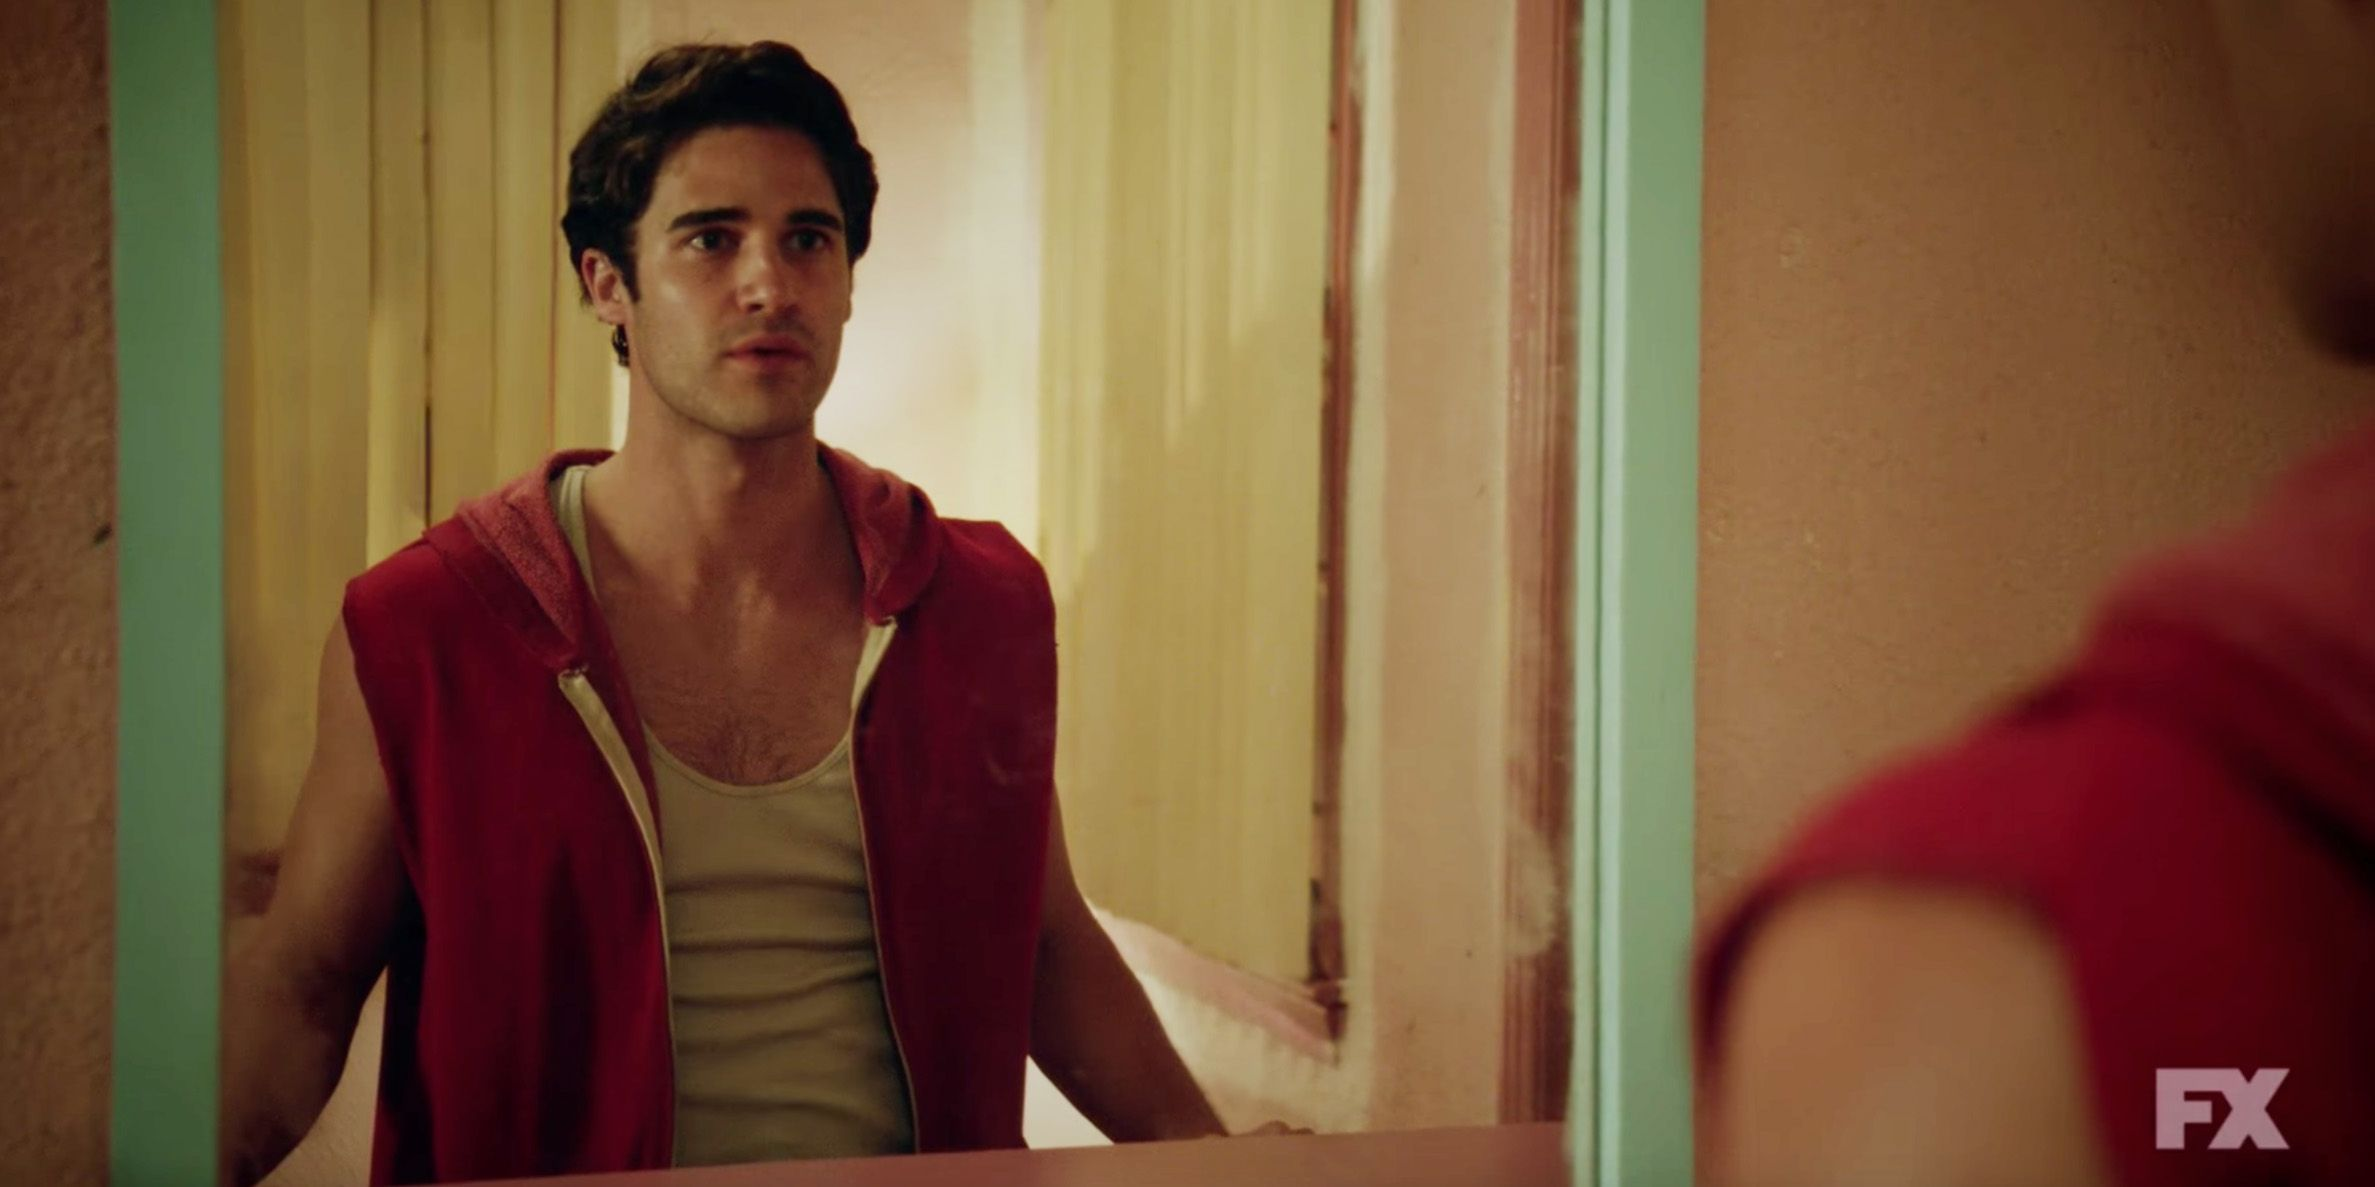 A New Trailer for The Assassination of Gianni Versace Introduces Andrew Cunanans First Victims recommendations